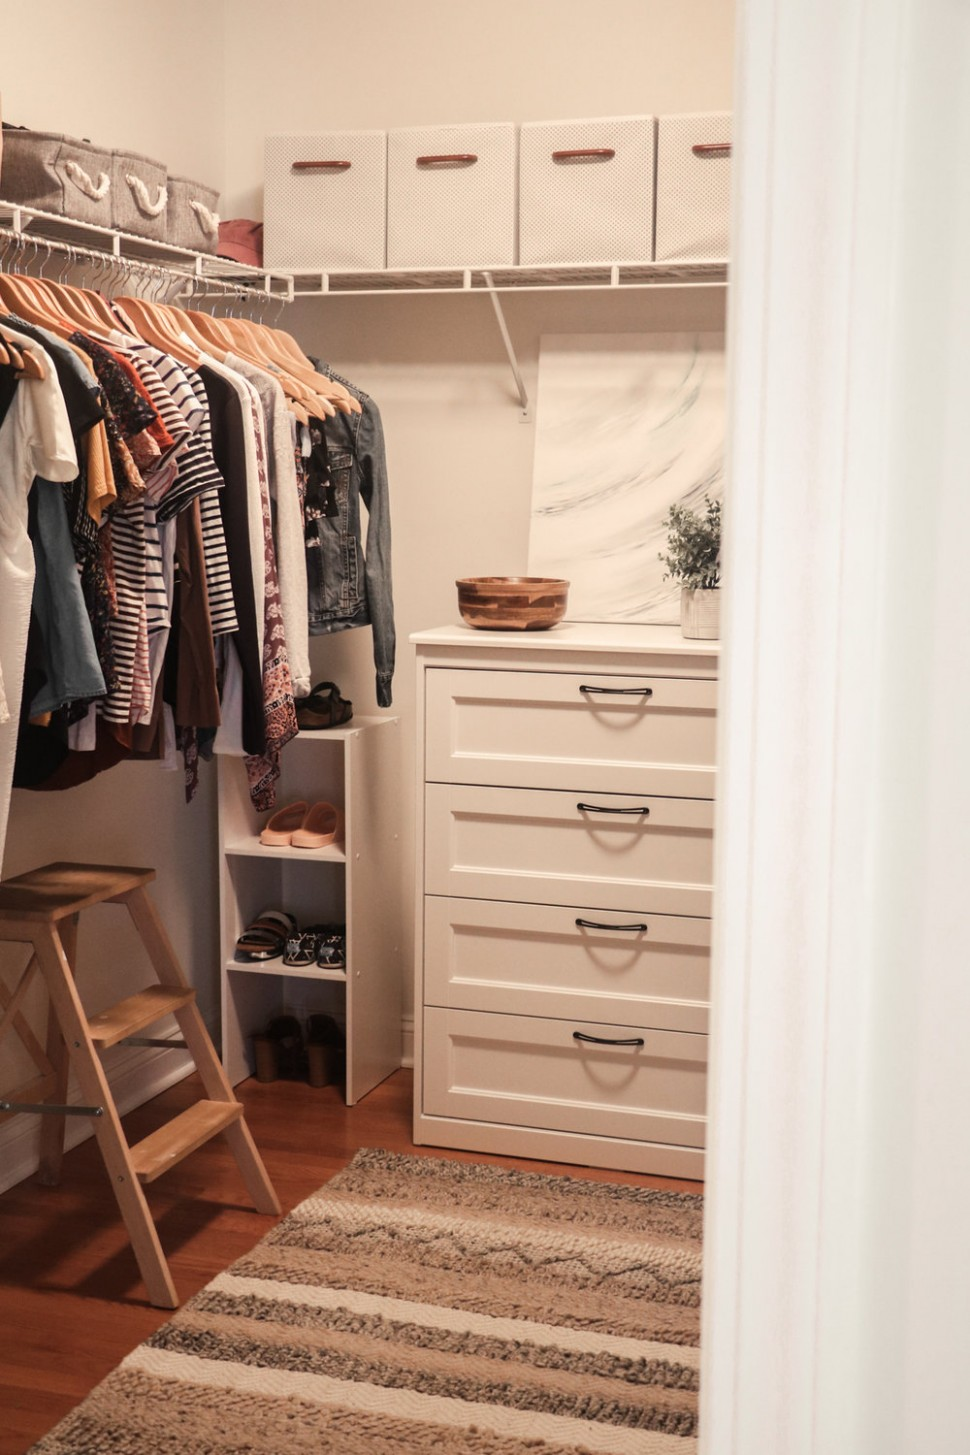 Master Bedroom Closet  Small Changes For a Big Change — root + dwell - Closet Ideas In Bedroom